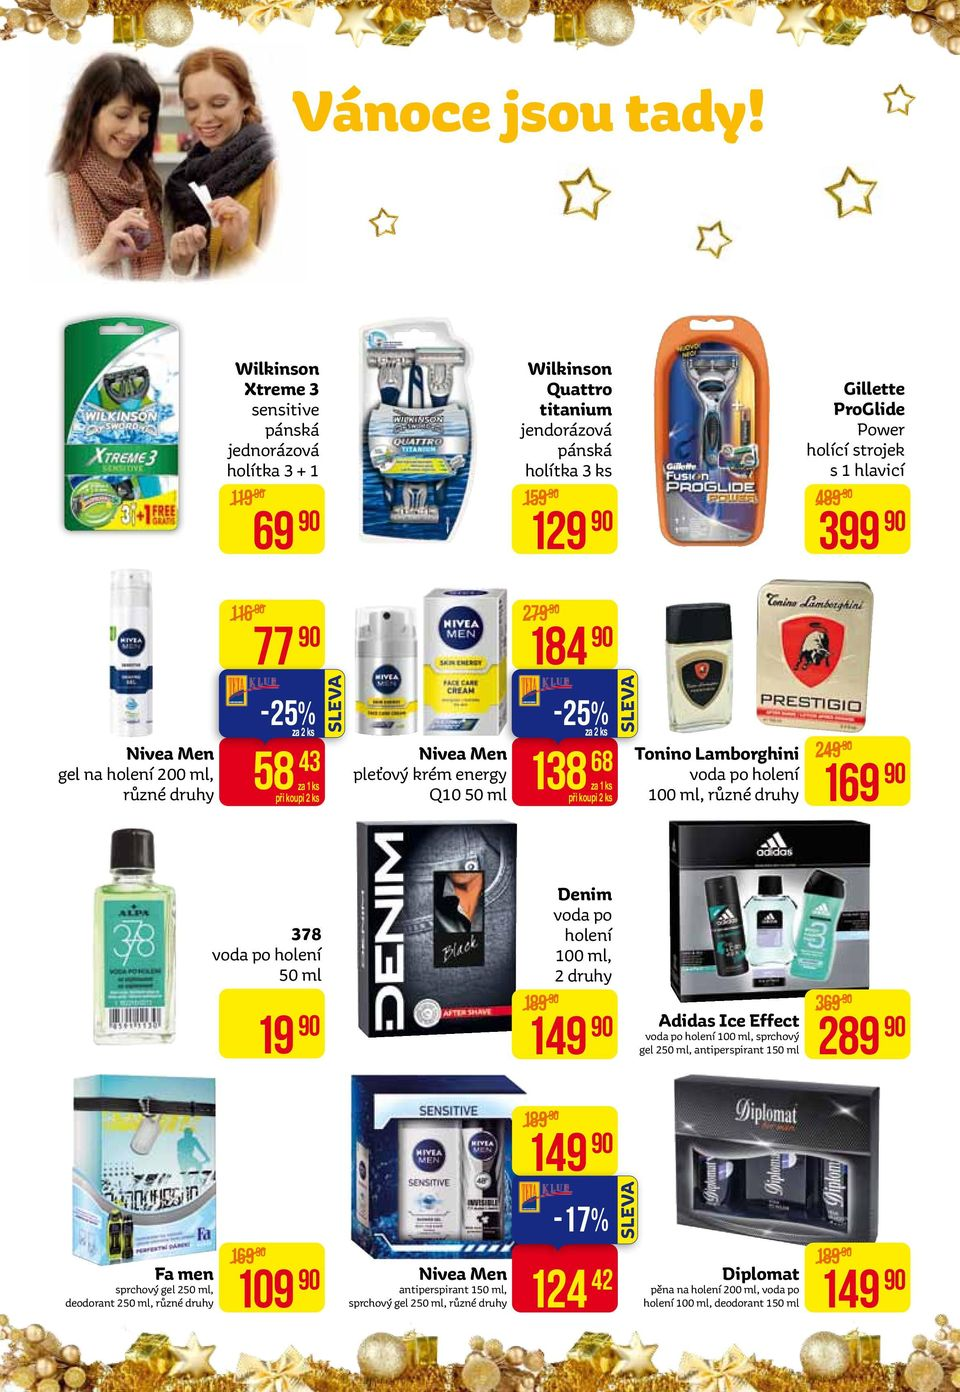 489 399 116 77 279 184 Nivea Men gel na holení 200 ml, -25% za 2 ks 58 43 Nivea Men pleťový krém energy Q10 50 ml -25% za 2 ks 138 68 Tonino Lamborghini voda po holení 100 ml, 249 169 378